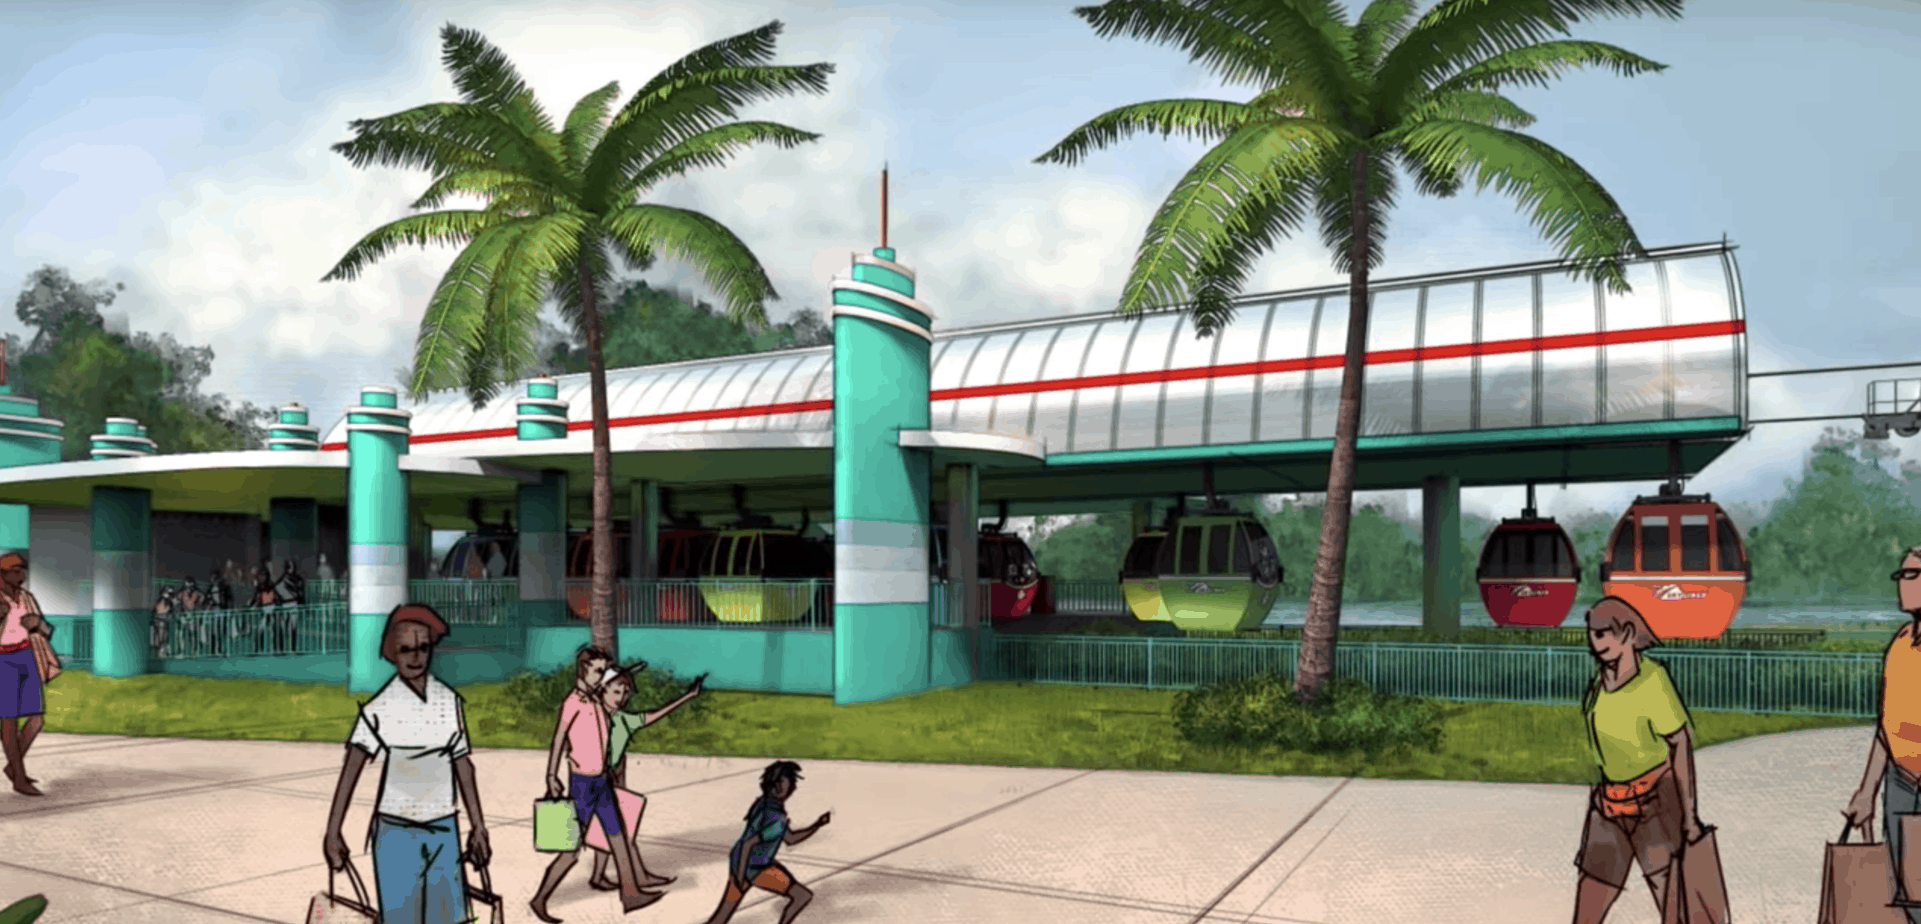 Disney Skyliner Station at Hollywood Studios